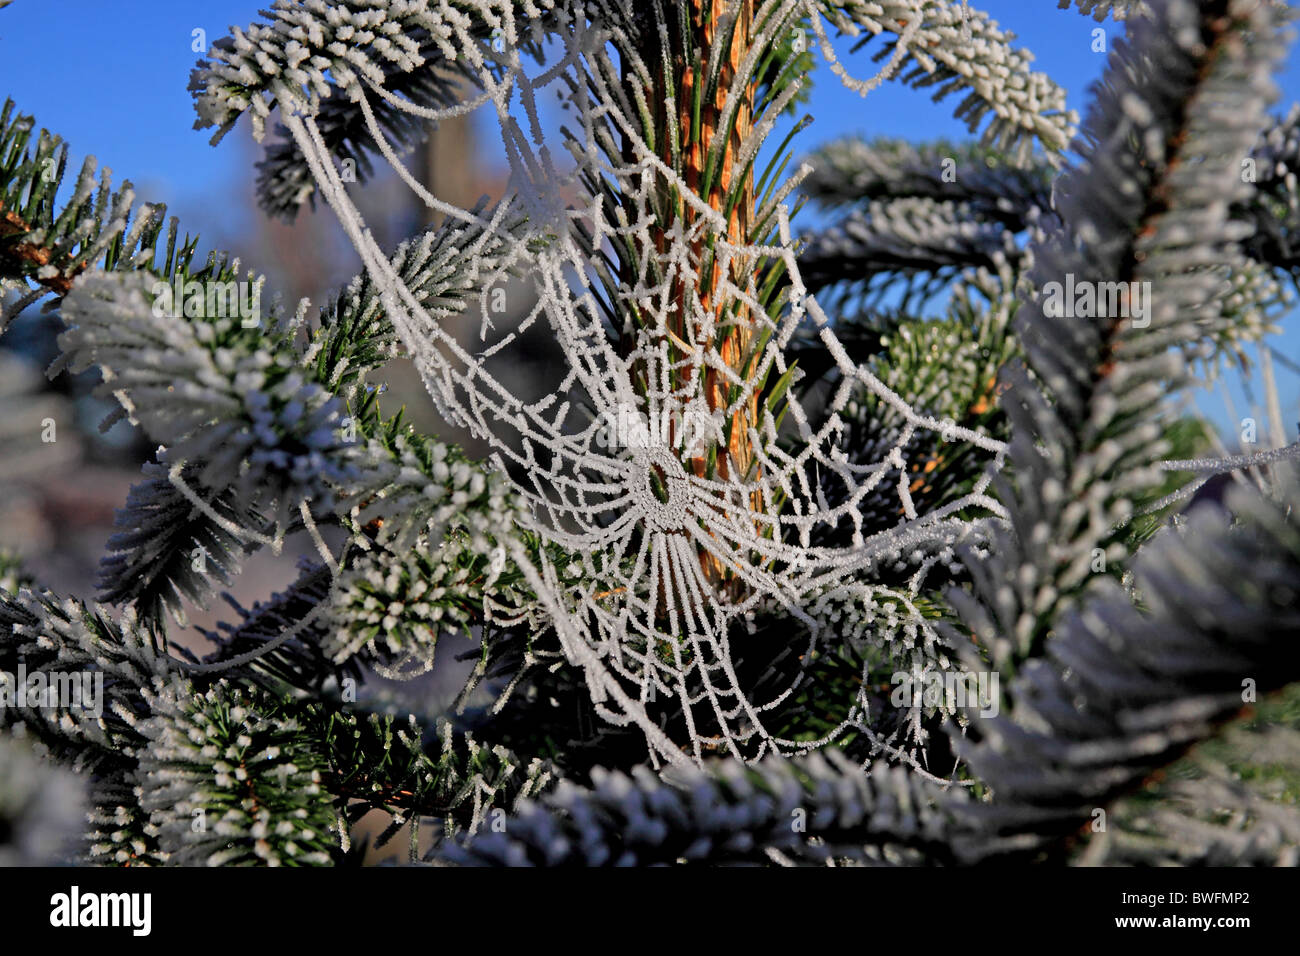 Frosted Spiders Web on Fir Tree - Stock Image